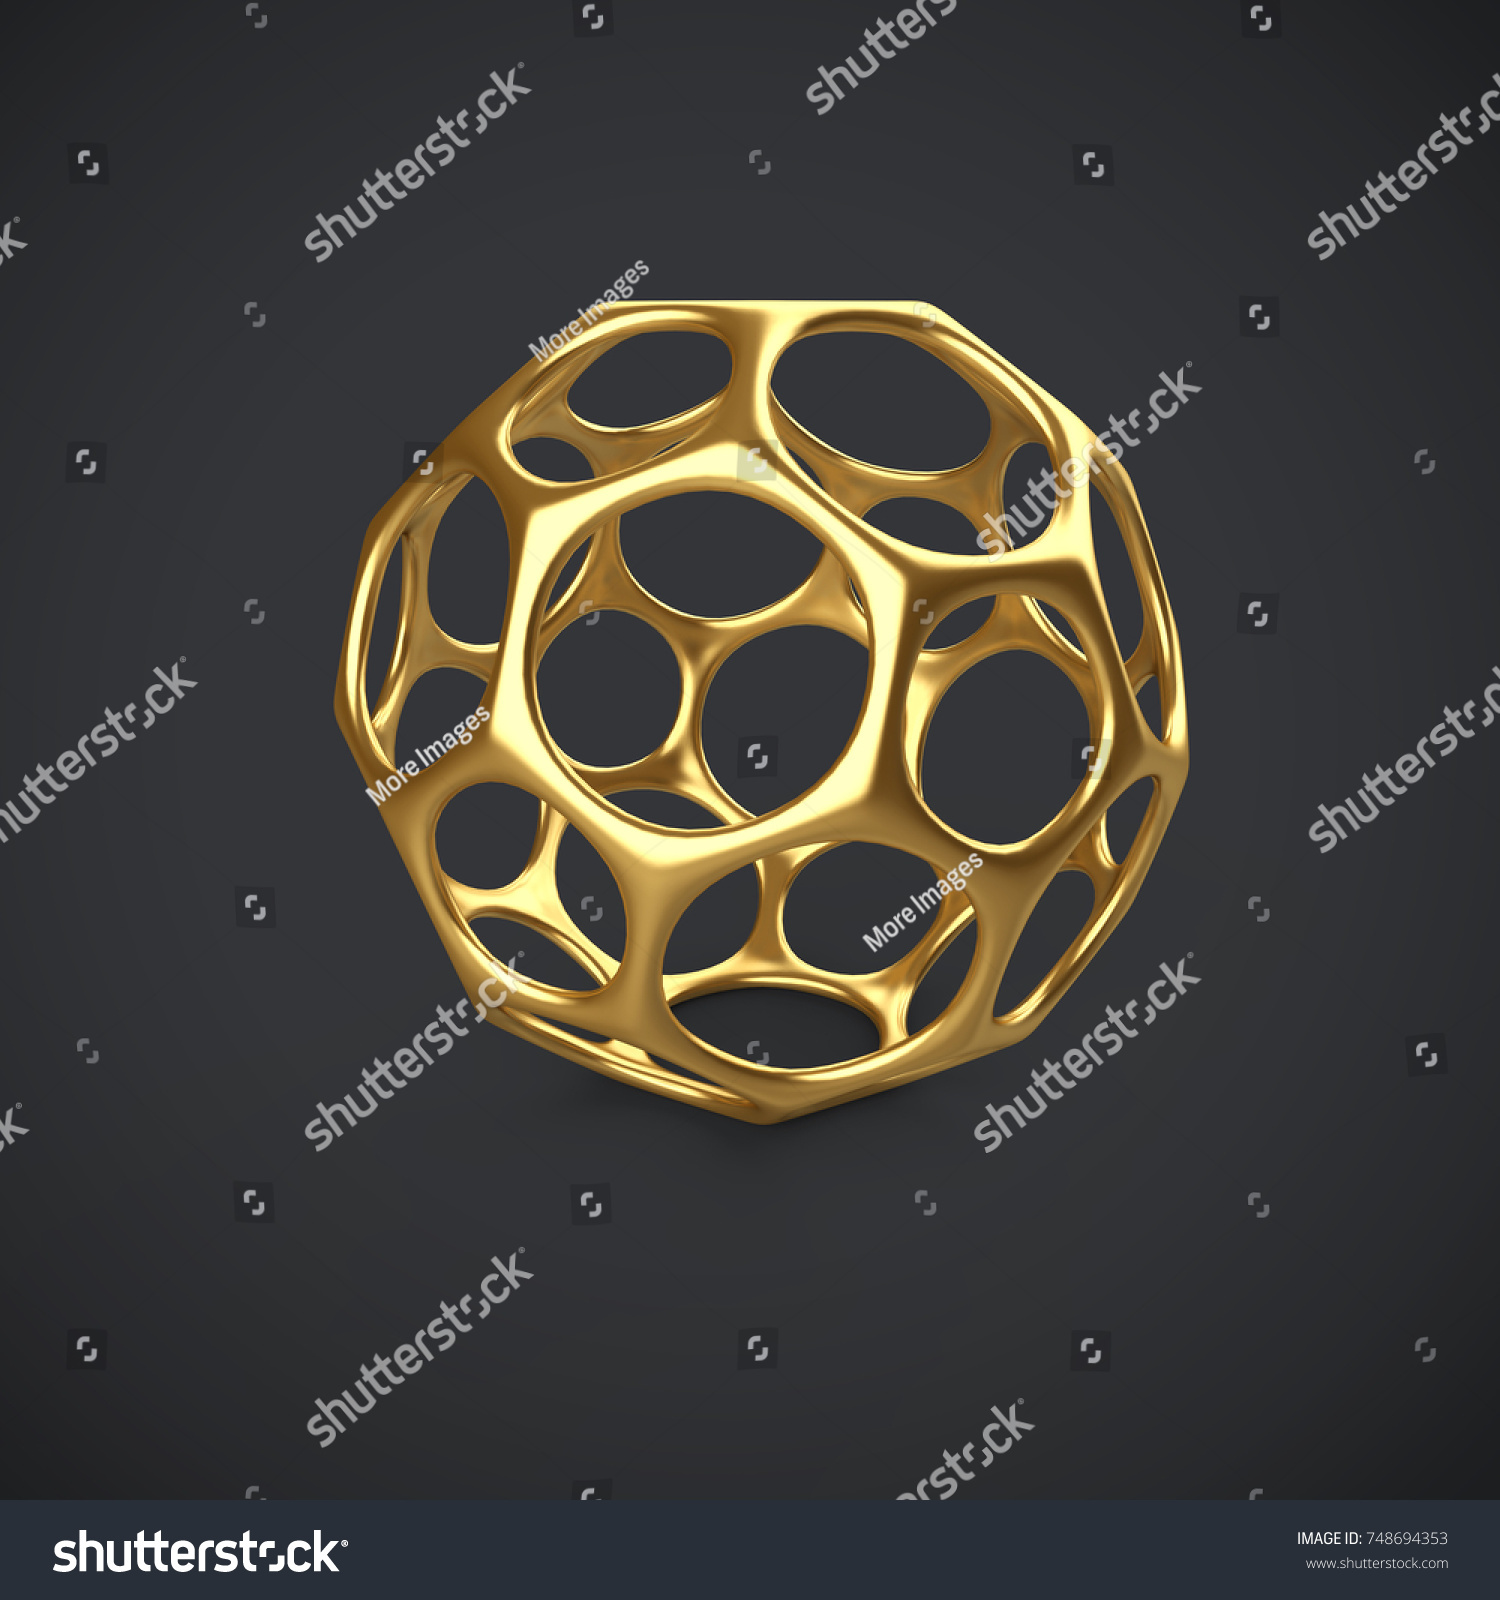 3 D Gold Wireframe Ball Isolated On Stock Illustration 748694353 ...